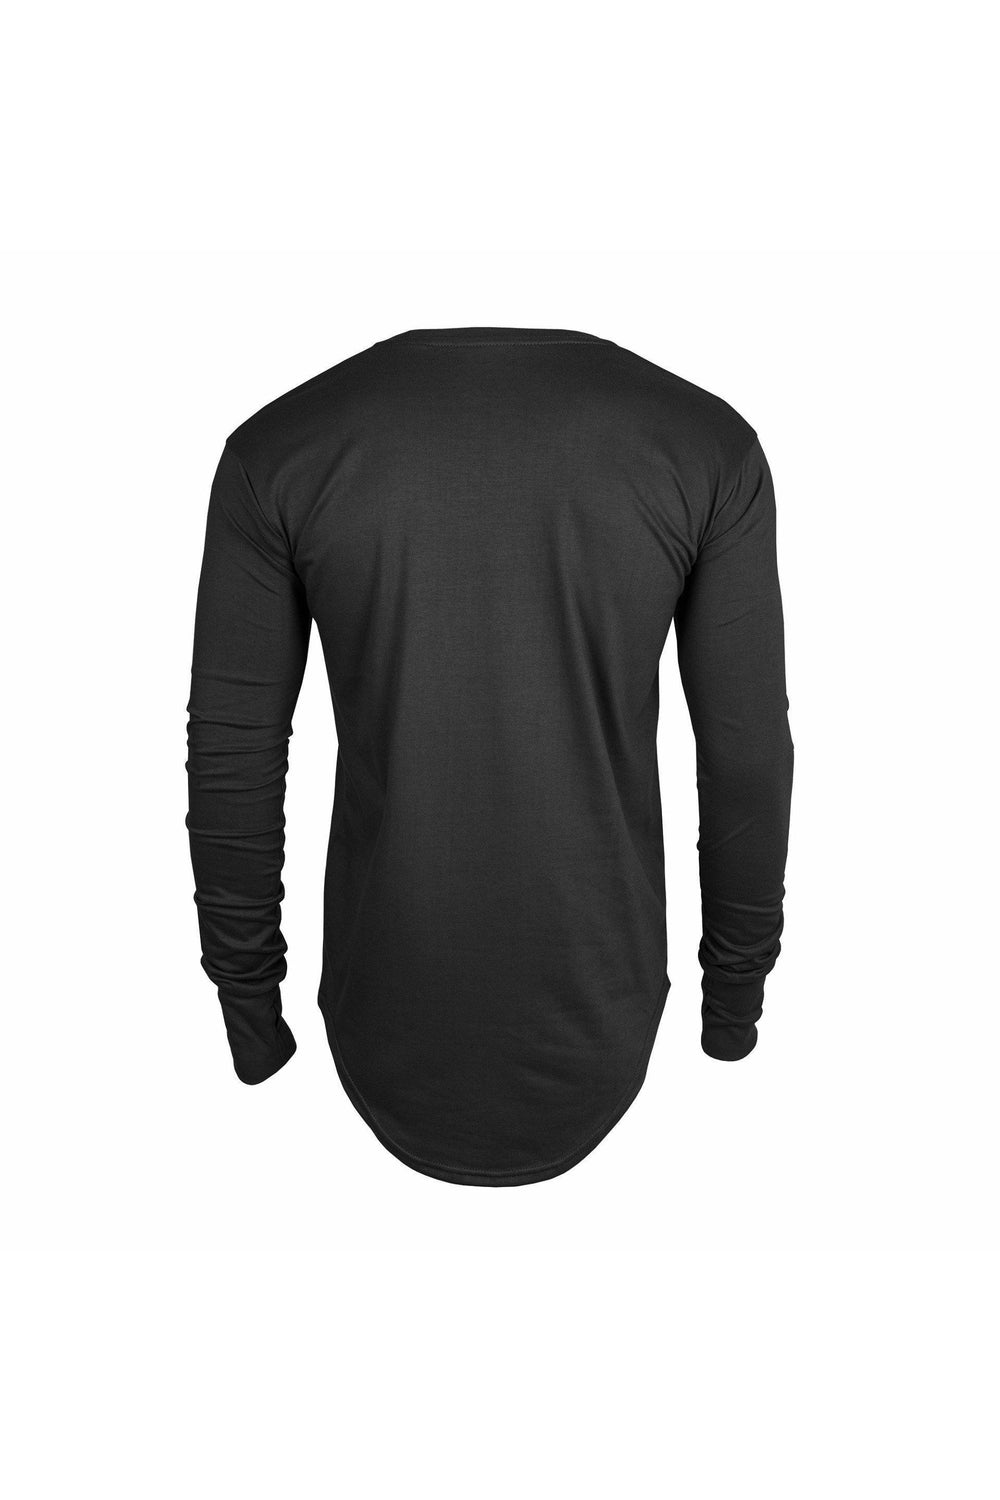 T-Shirts - YOLC. Longline Curved Hem T-Shirt Long Sleeve Black